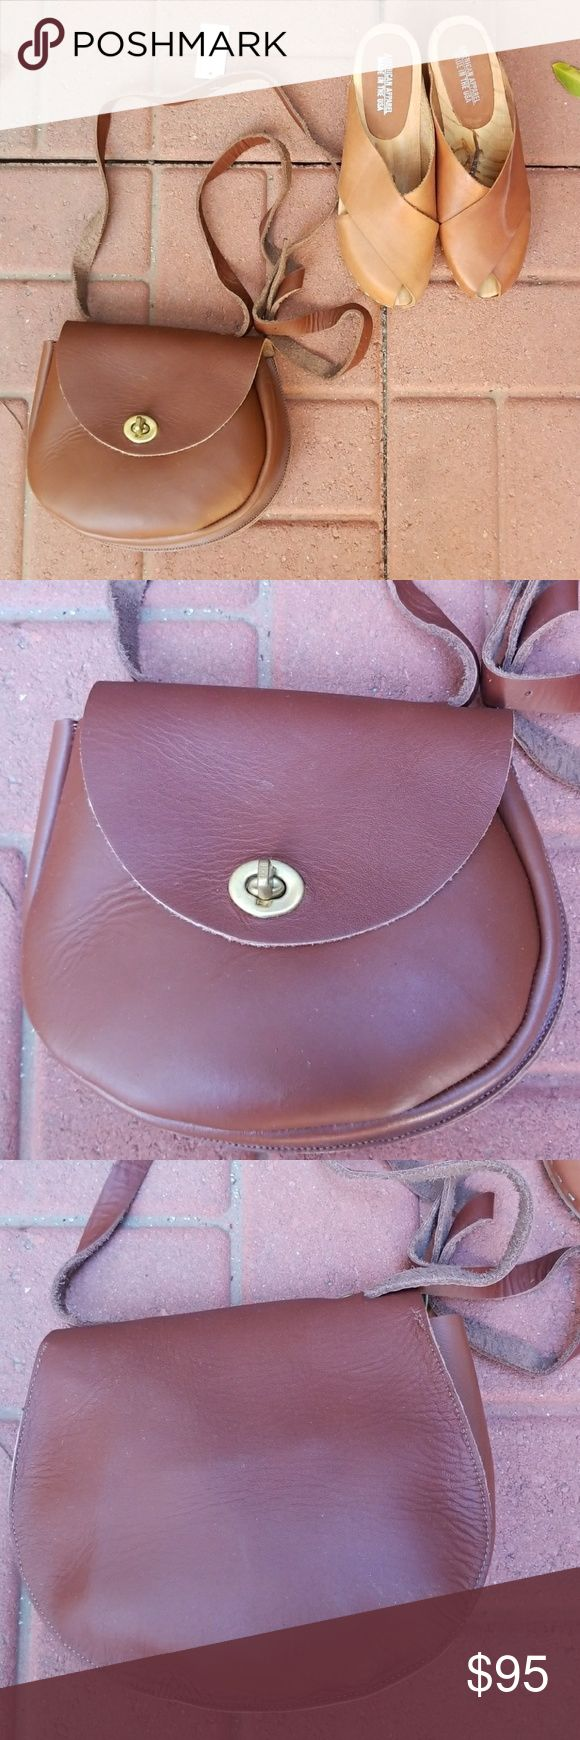 American Apparel leather Crossbody purse NWT Brand new with tag attached American Apparel brown leather Crossbody purse. Fits a lot and very useful.  Hard to find in this brand NEW condition. Amazing quality leather will last very long!! No trades American Apparel Bags Crossbody Bags